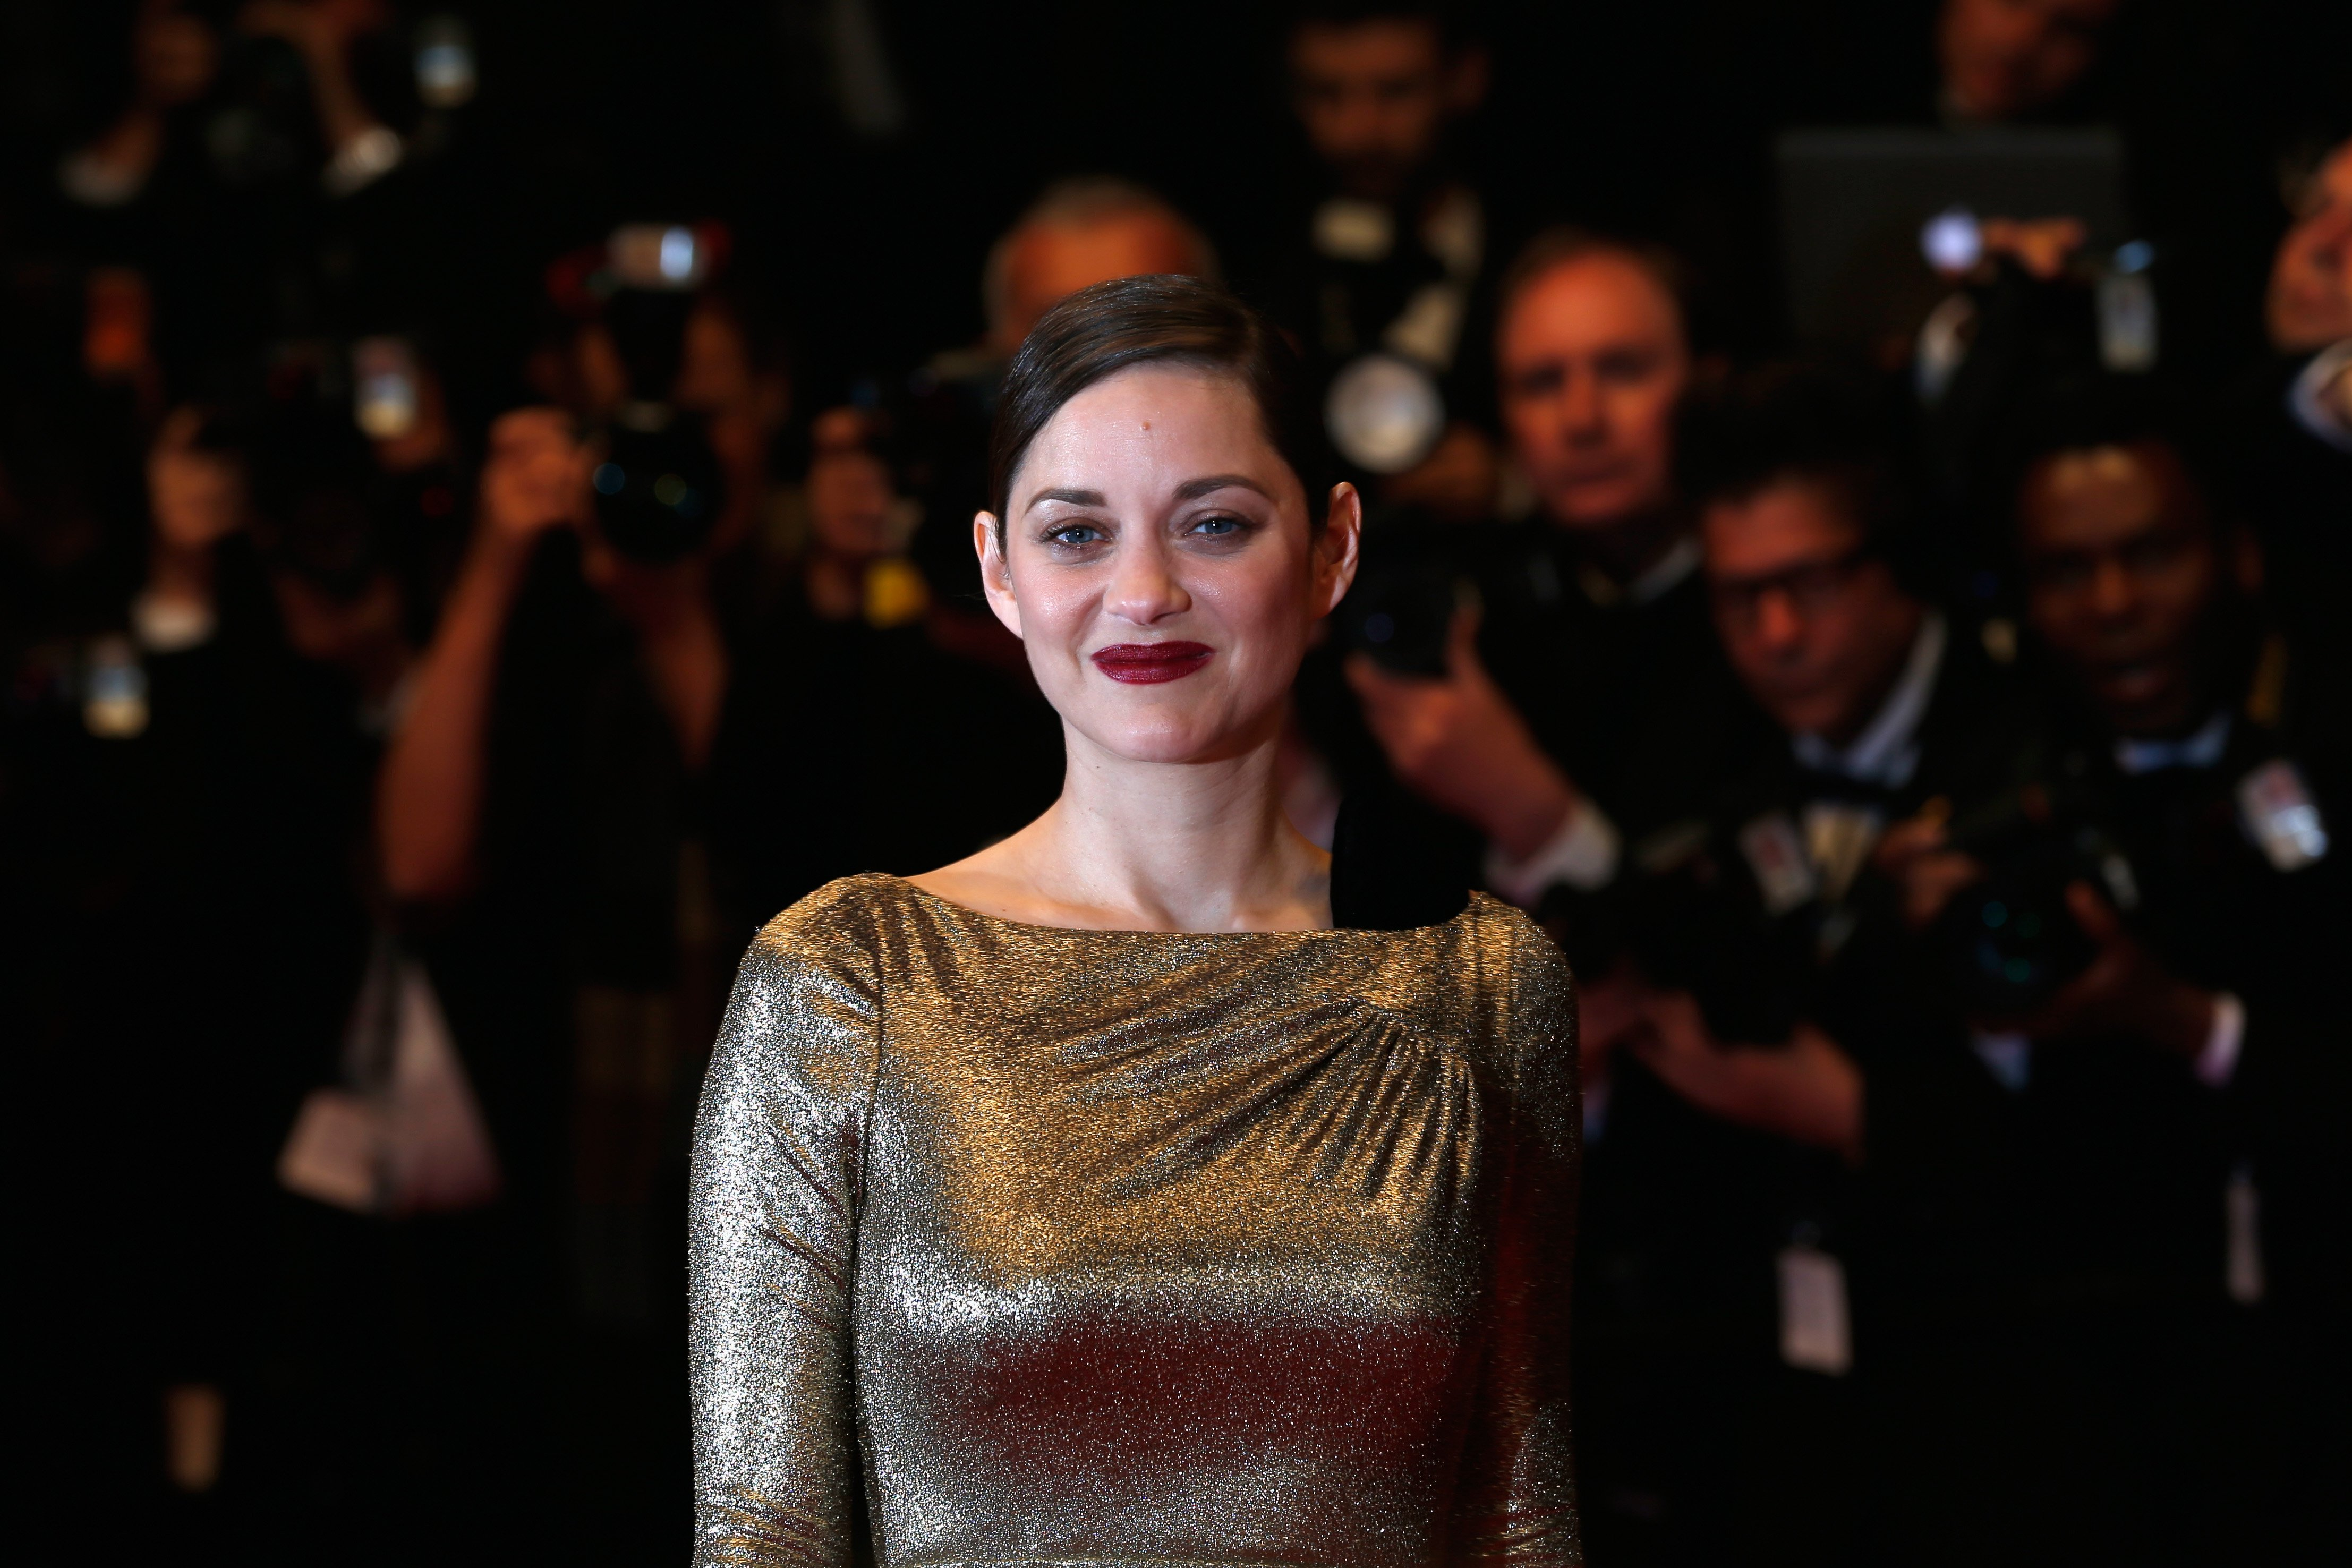 Marion Cotillard leaves the 'From The Land Of The Moon' premiere during the 69th annual Cannes Film Festival at the Palais des Festivals on May 15, 2016